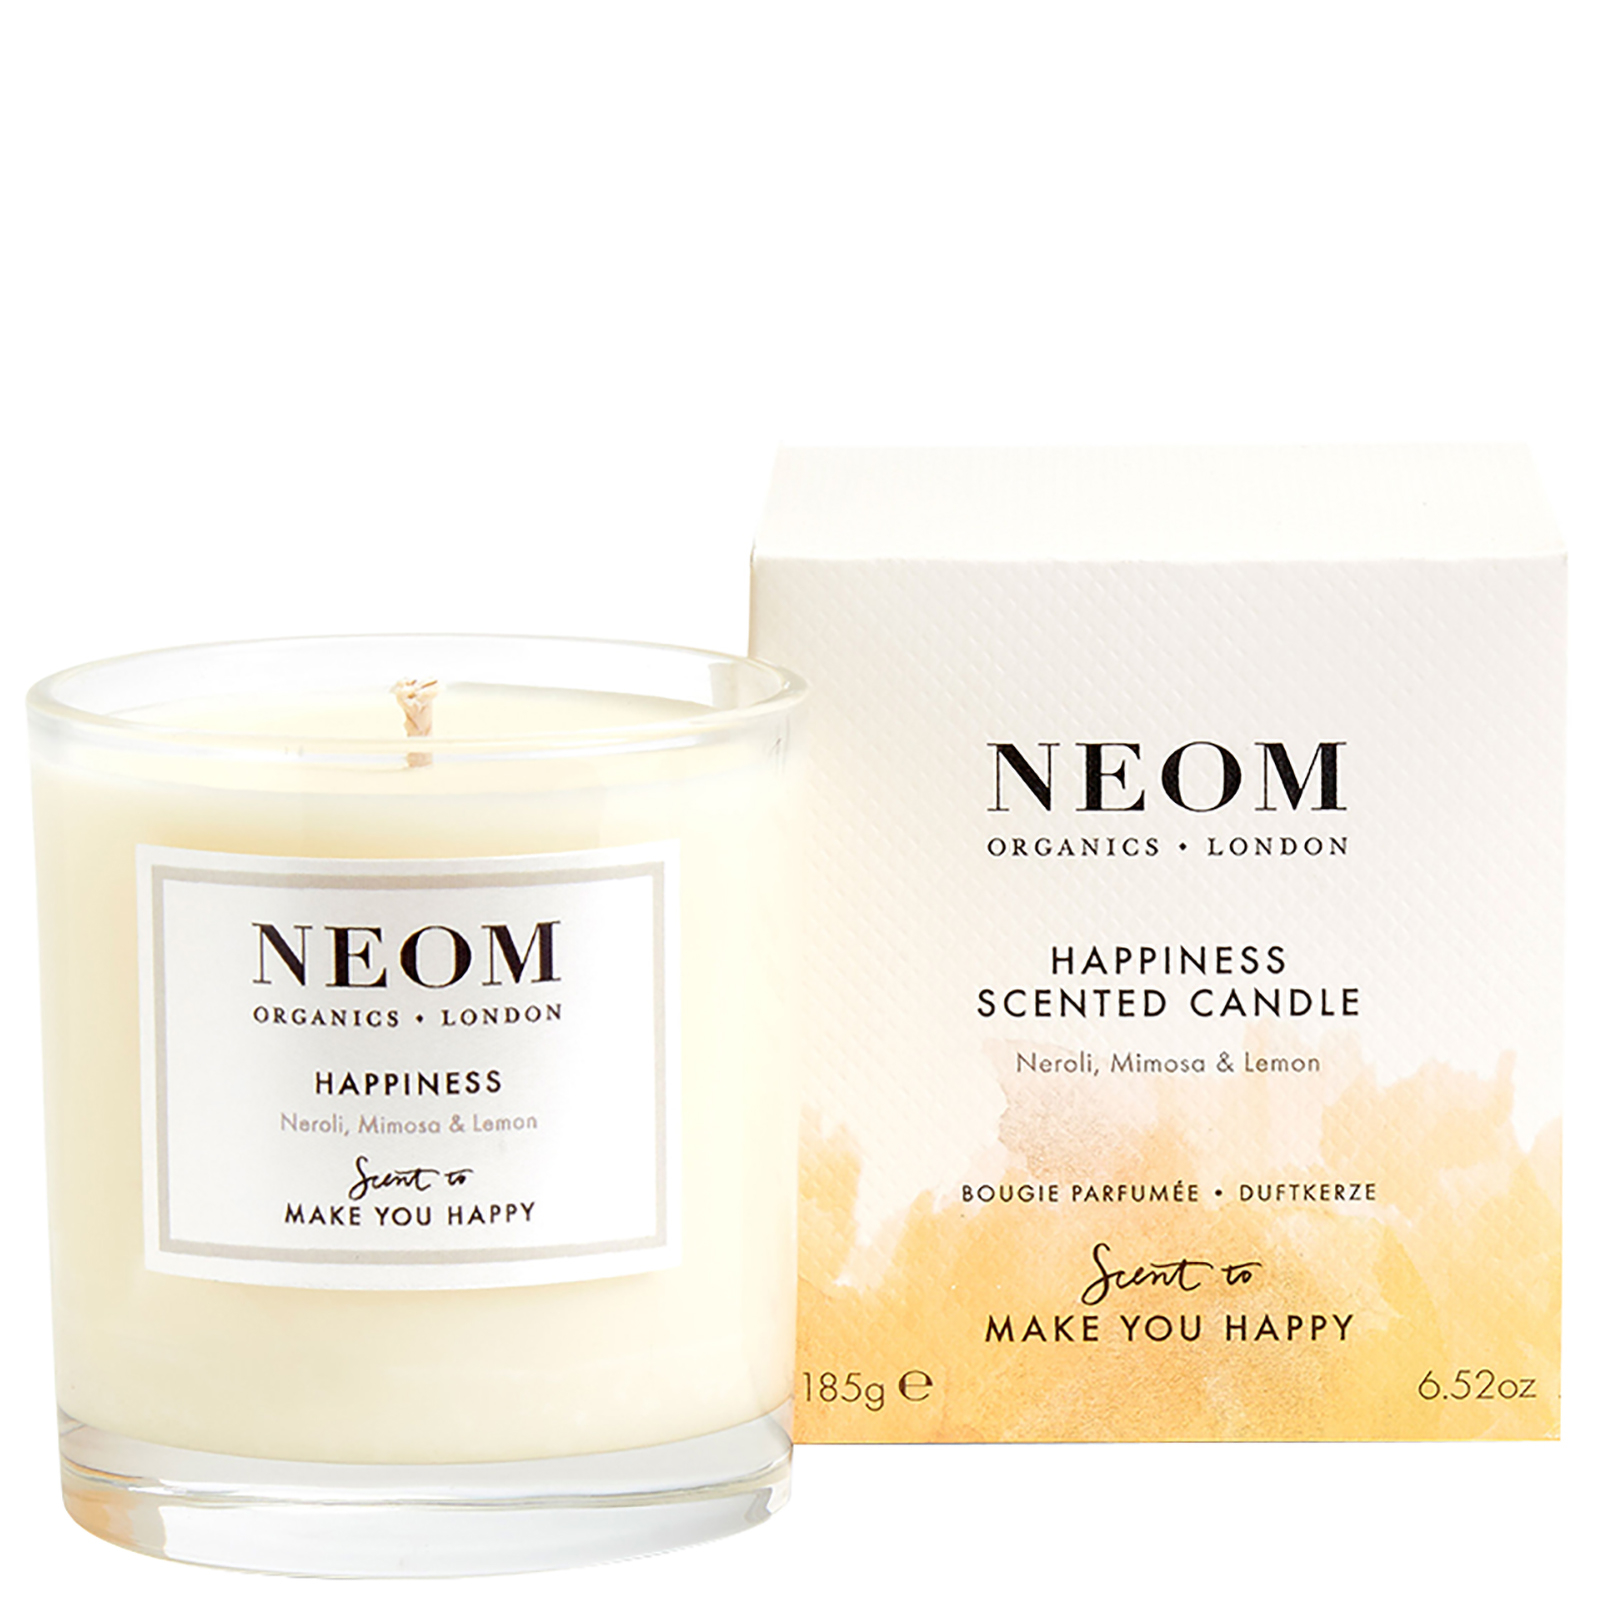 Neom Organics London Scent To Make You Happy Happiness Scented Candle (1 Wick) 185g